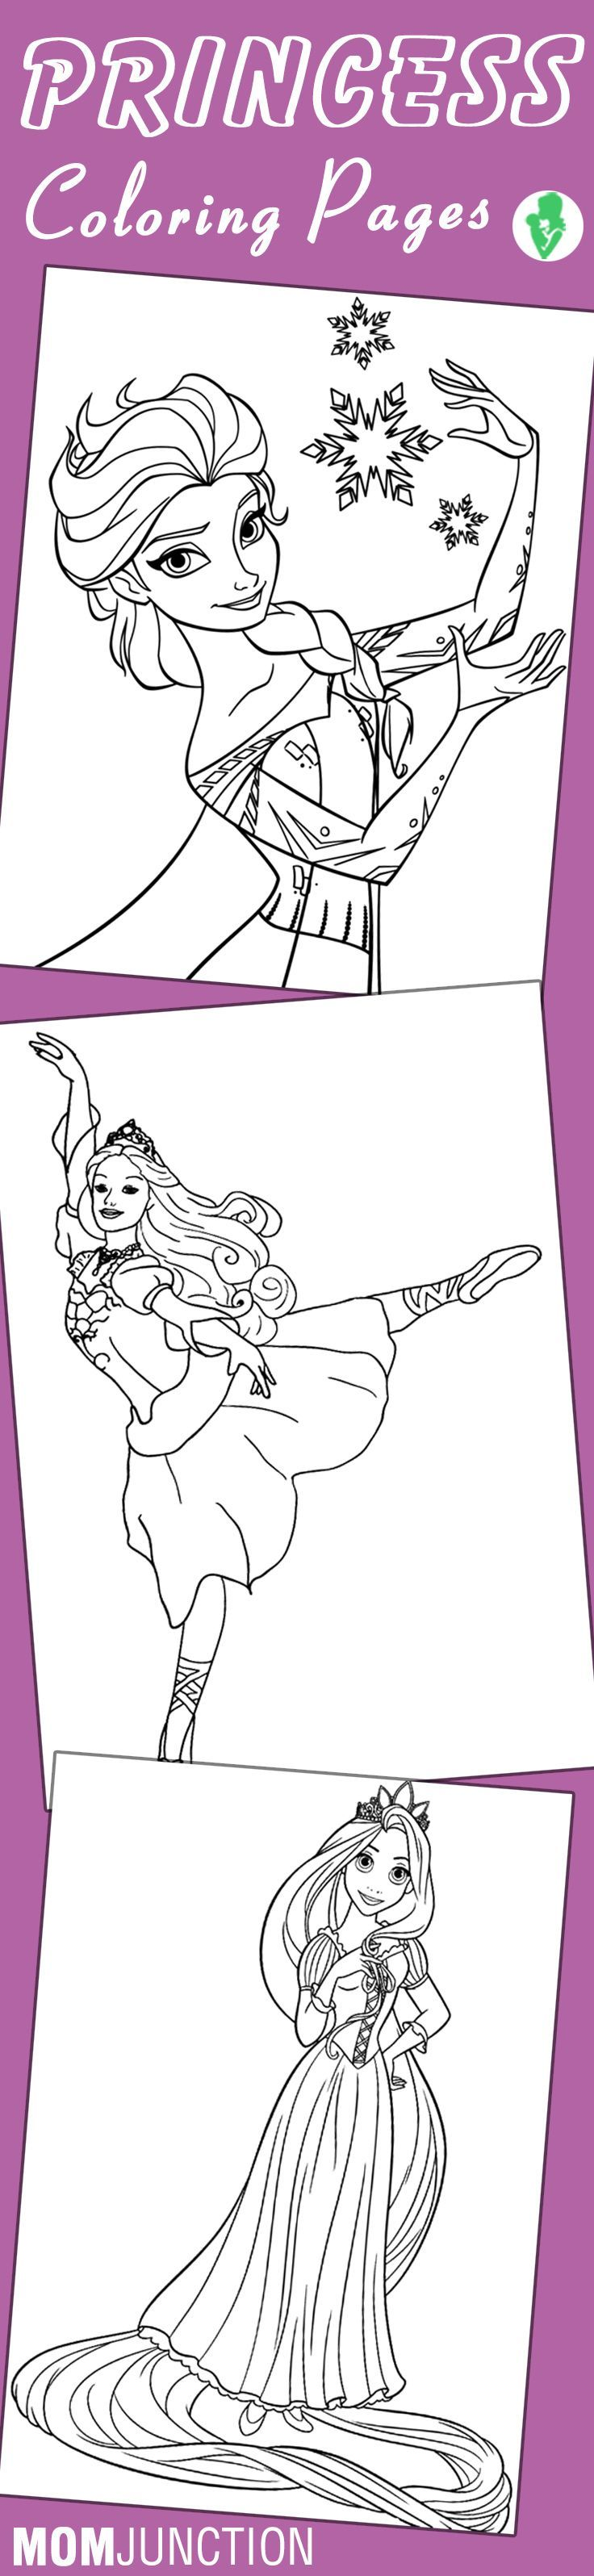 Online coloring mobile - Top 25 Free Printable Princess Coloring Pages Online